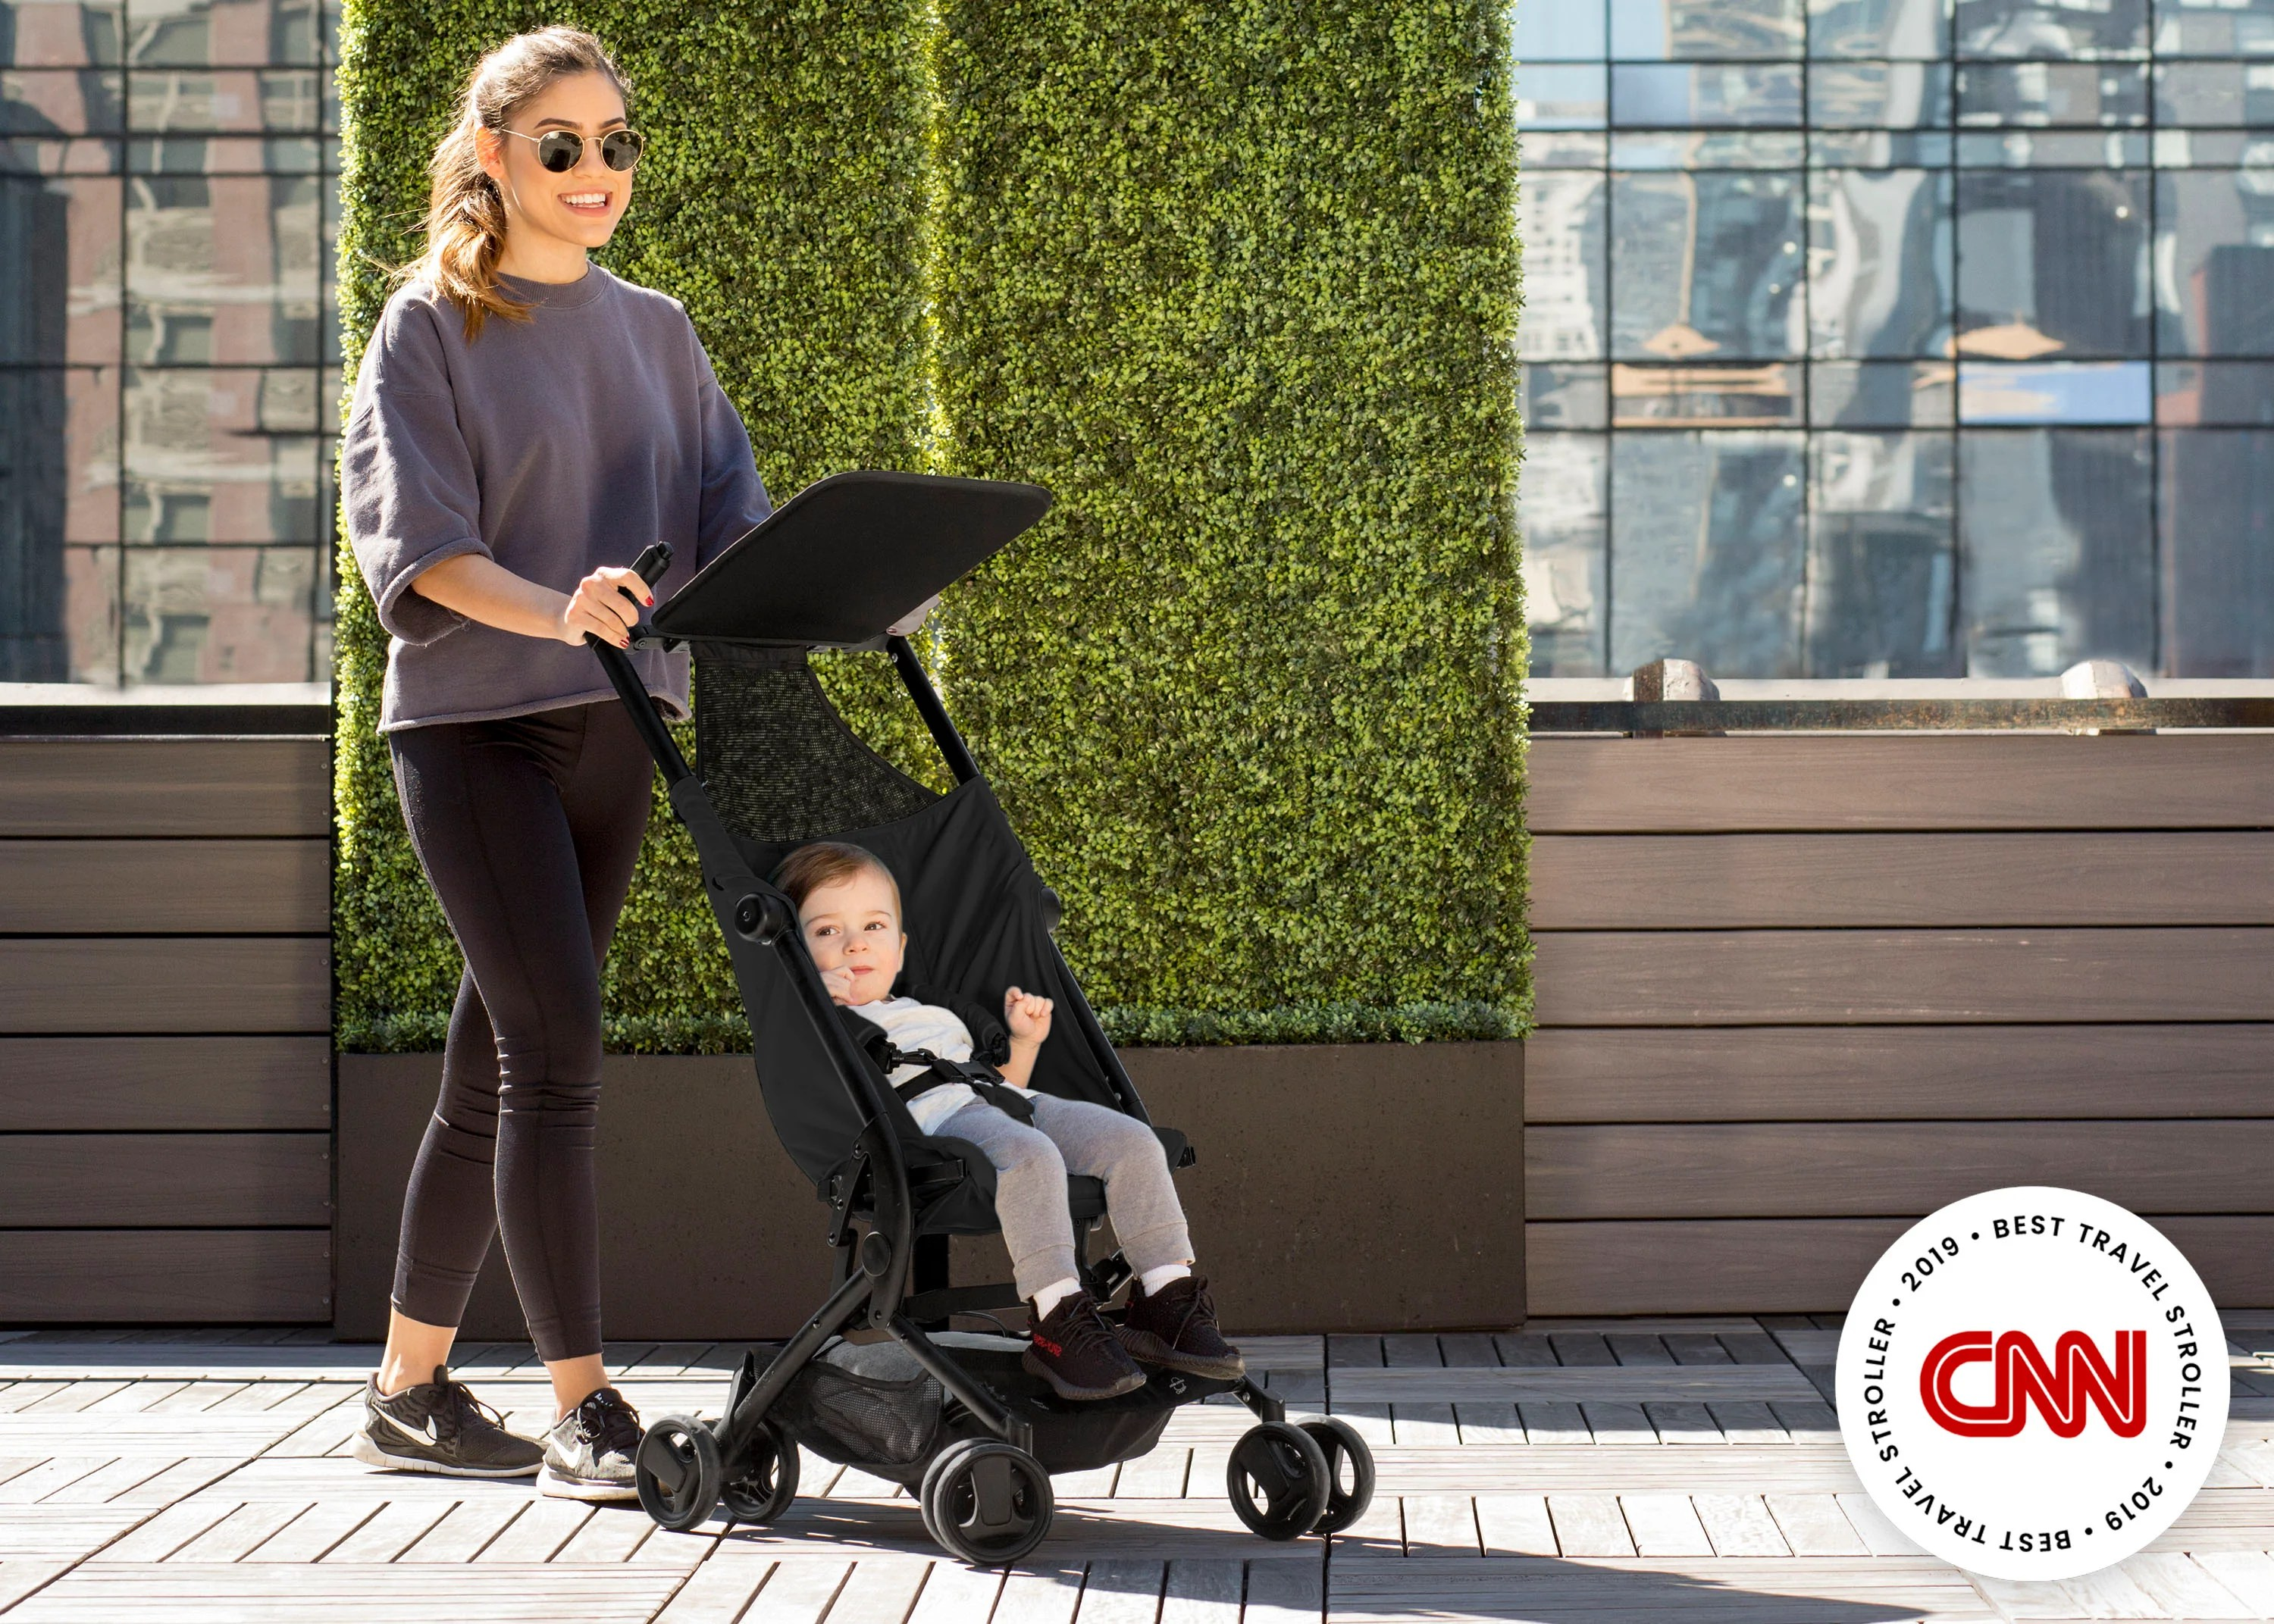 Stroller Travel System Ebay Delta Children The Clutch Compact Foldable Light Travel Baby Stroller Black